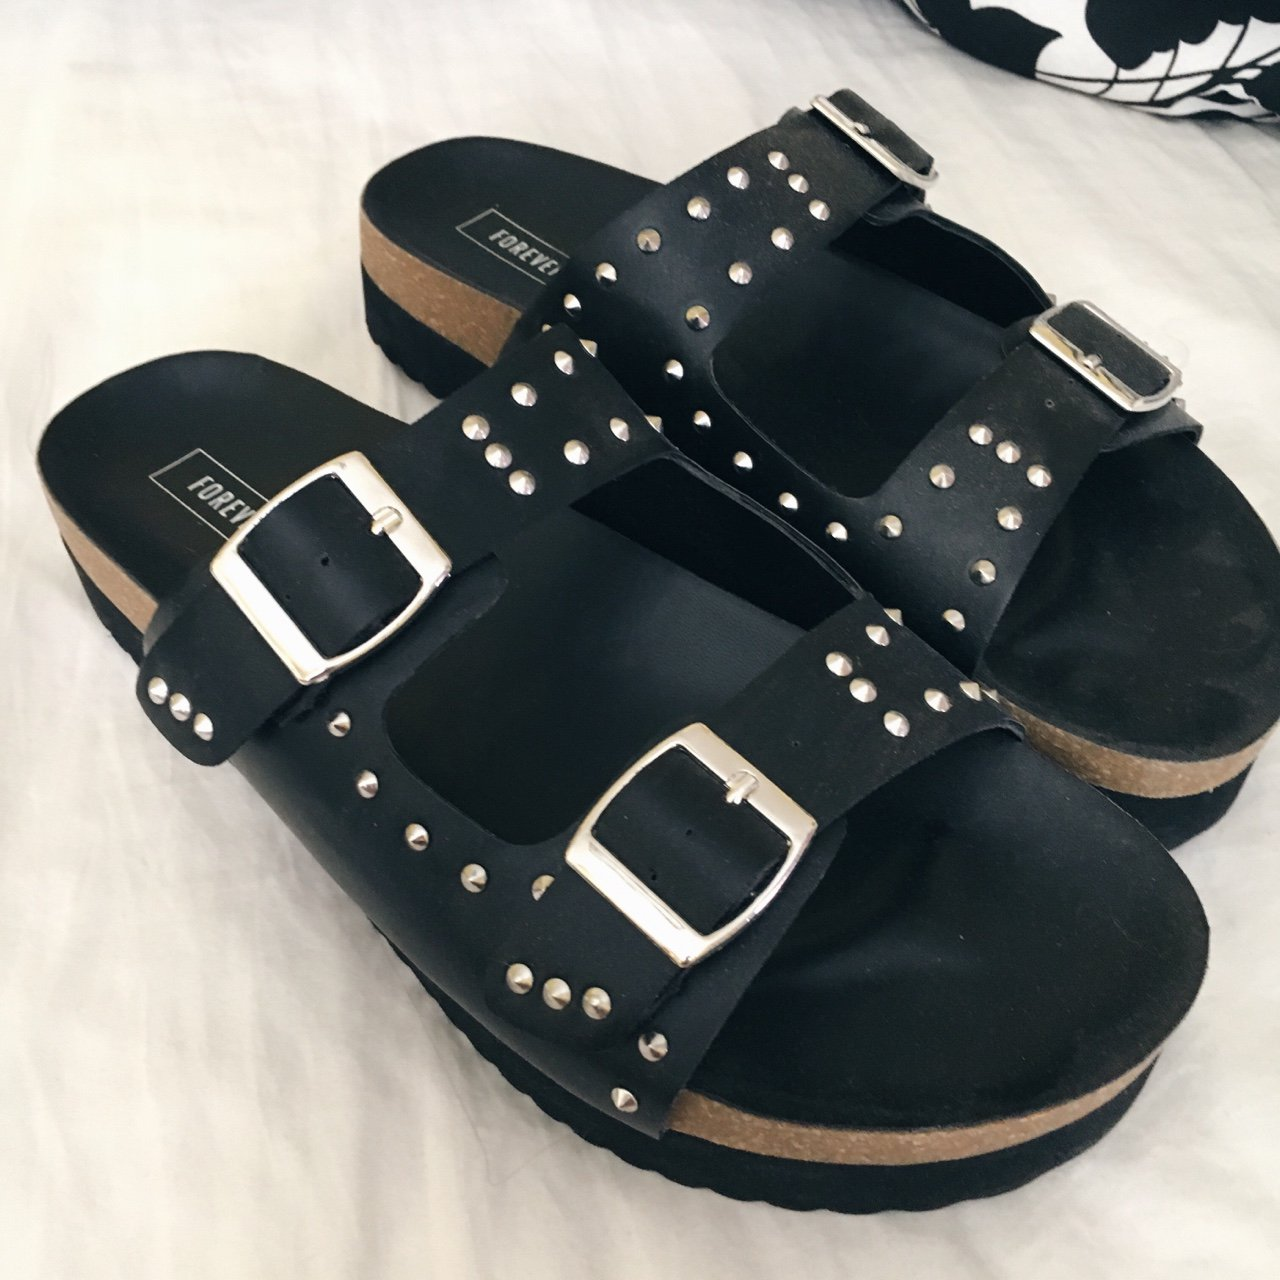 6955dfd14c94 Studded platform sandals from Forever 21. These edgy shoes - Depop